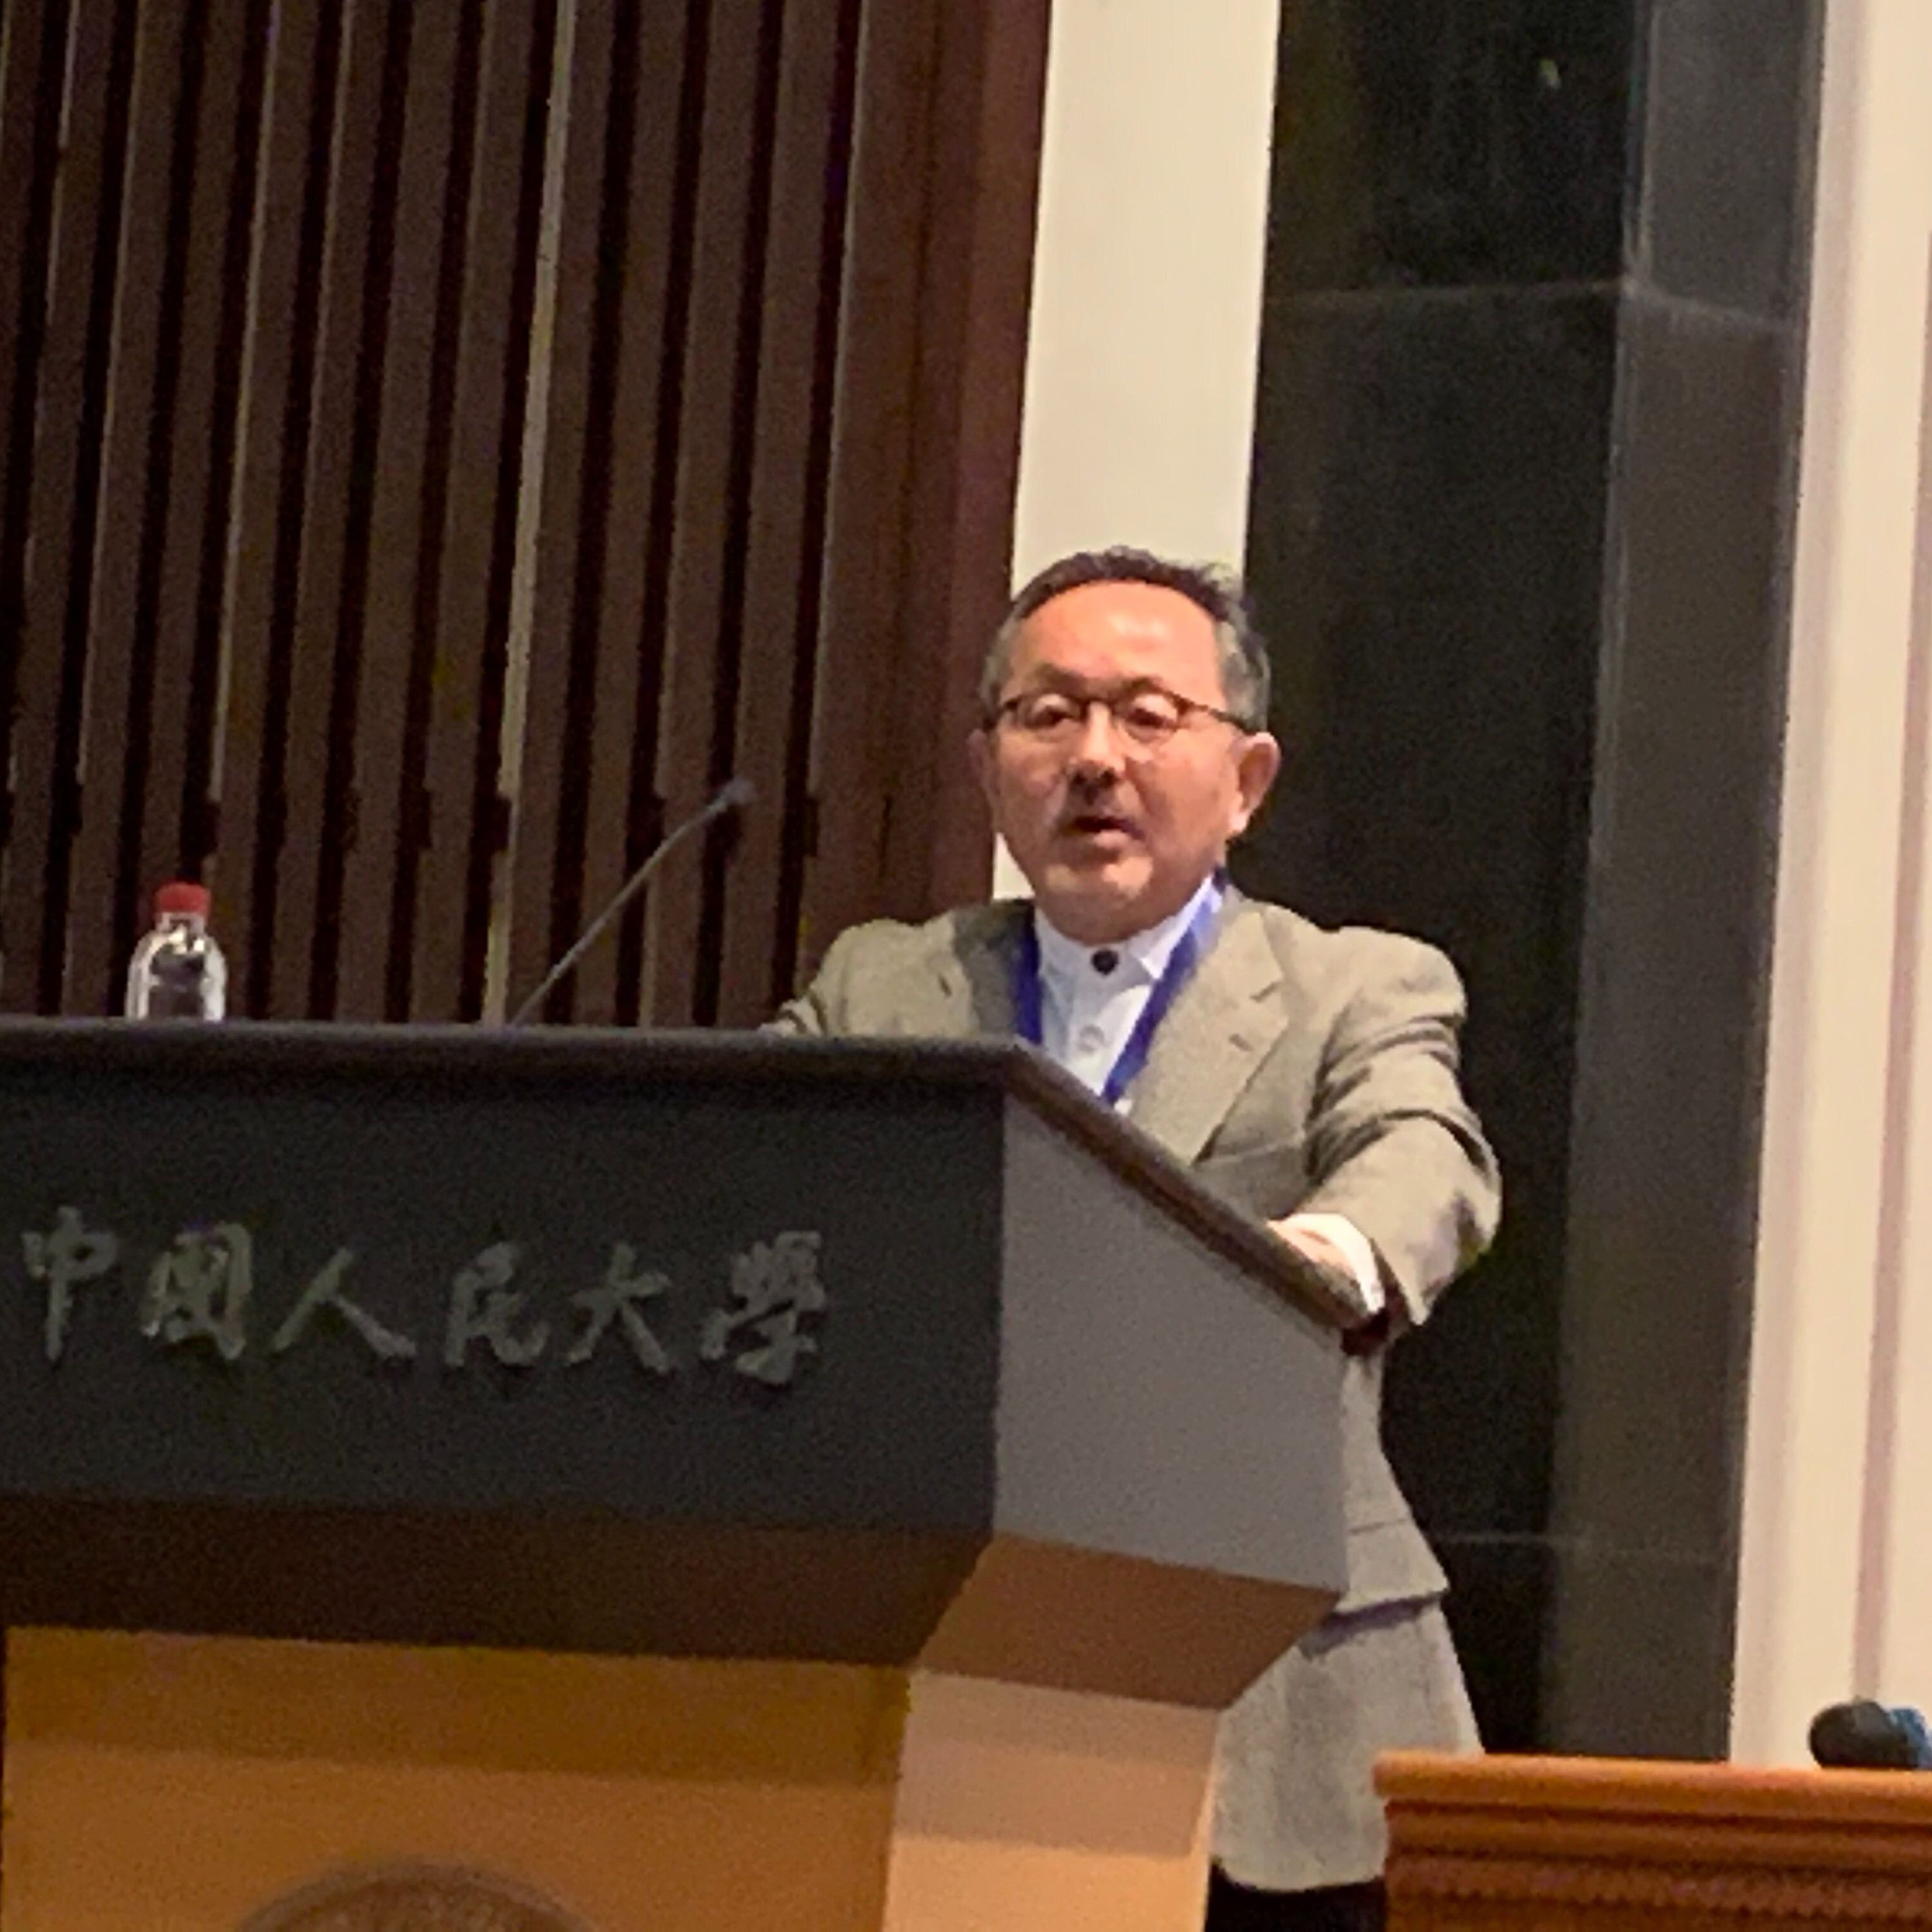 The keynote address at the first cultural psychology meeting of the Chinese Psychological Association, November 2019